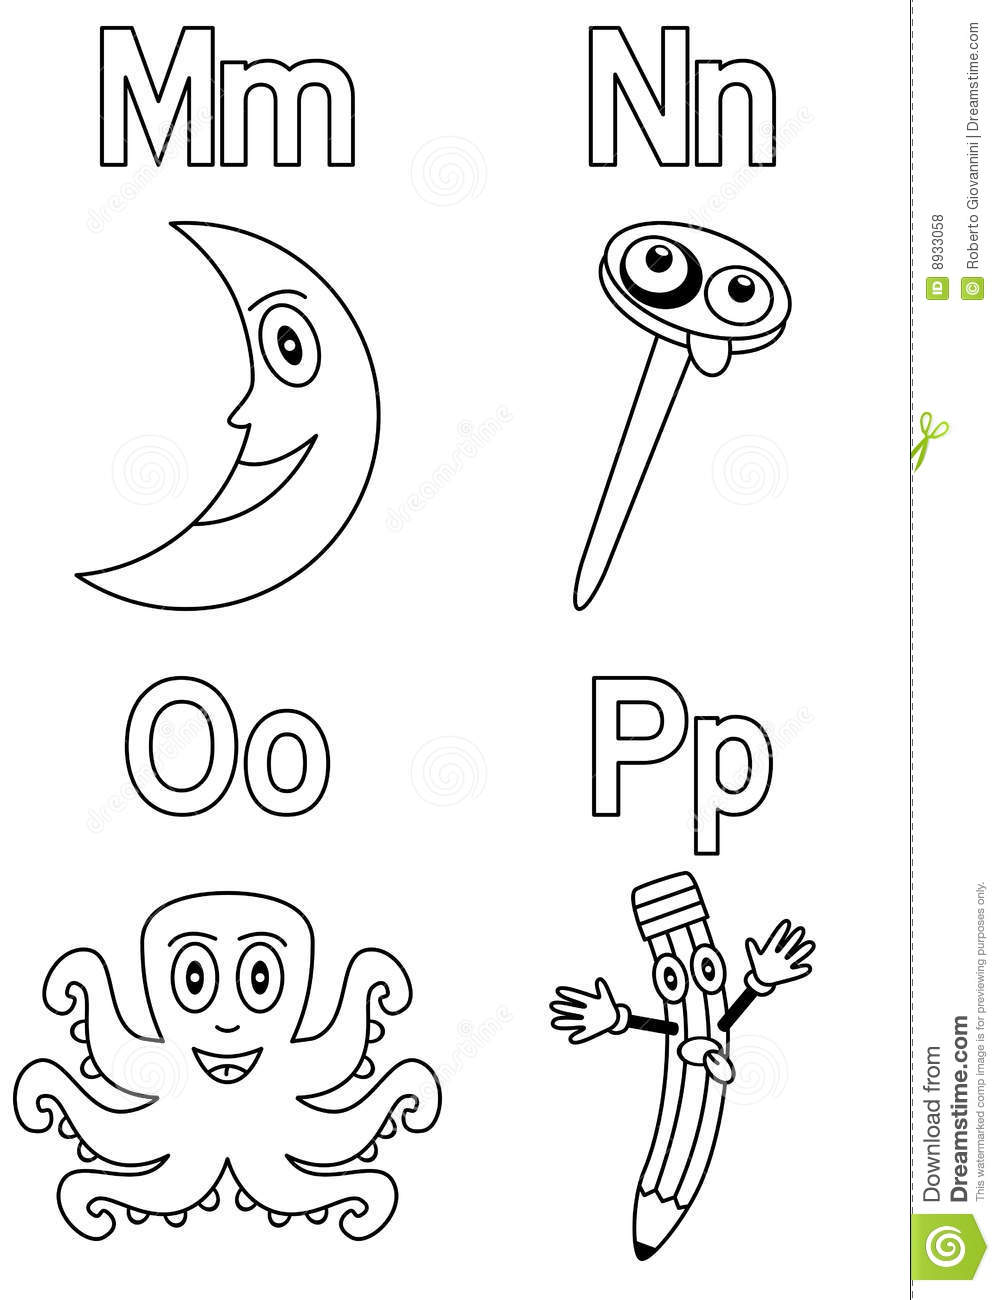 Coloring Alphabet For Kids 4 Stock Vector - Illustration ...